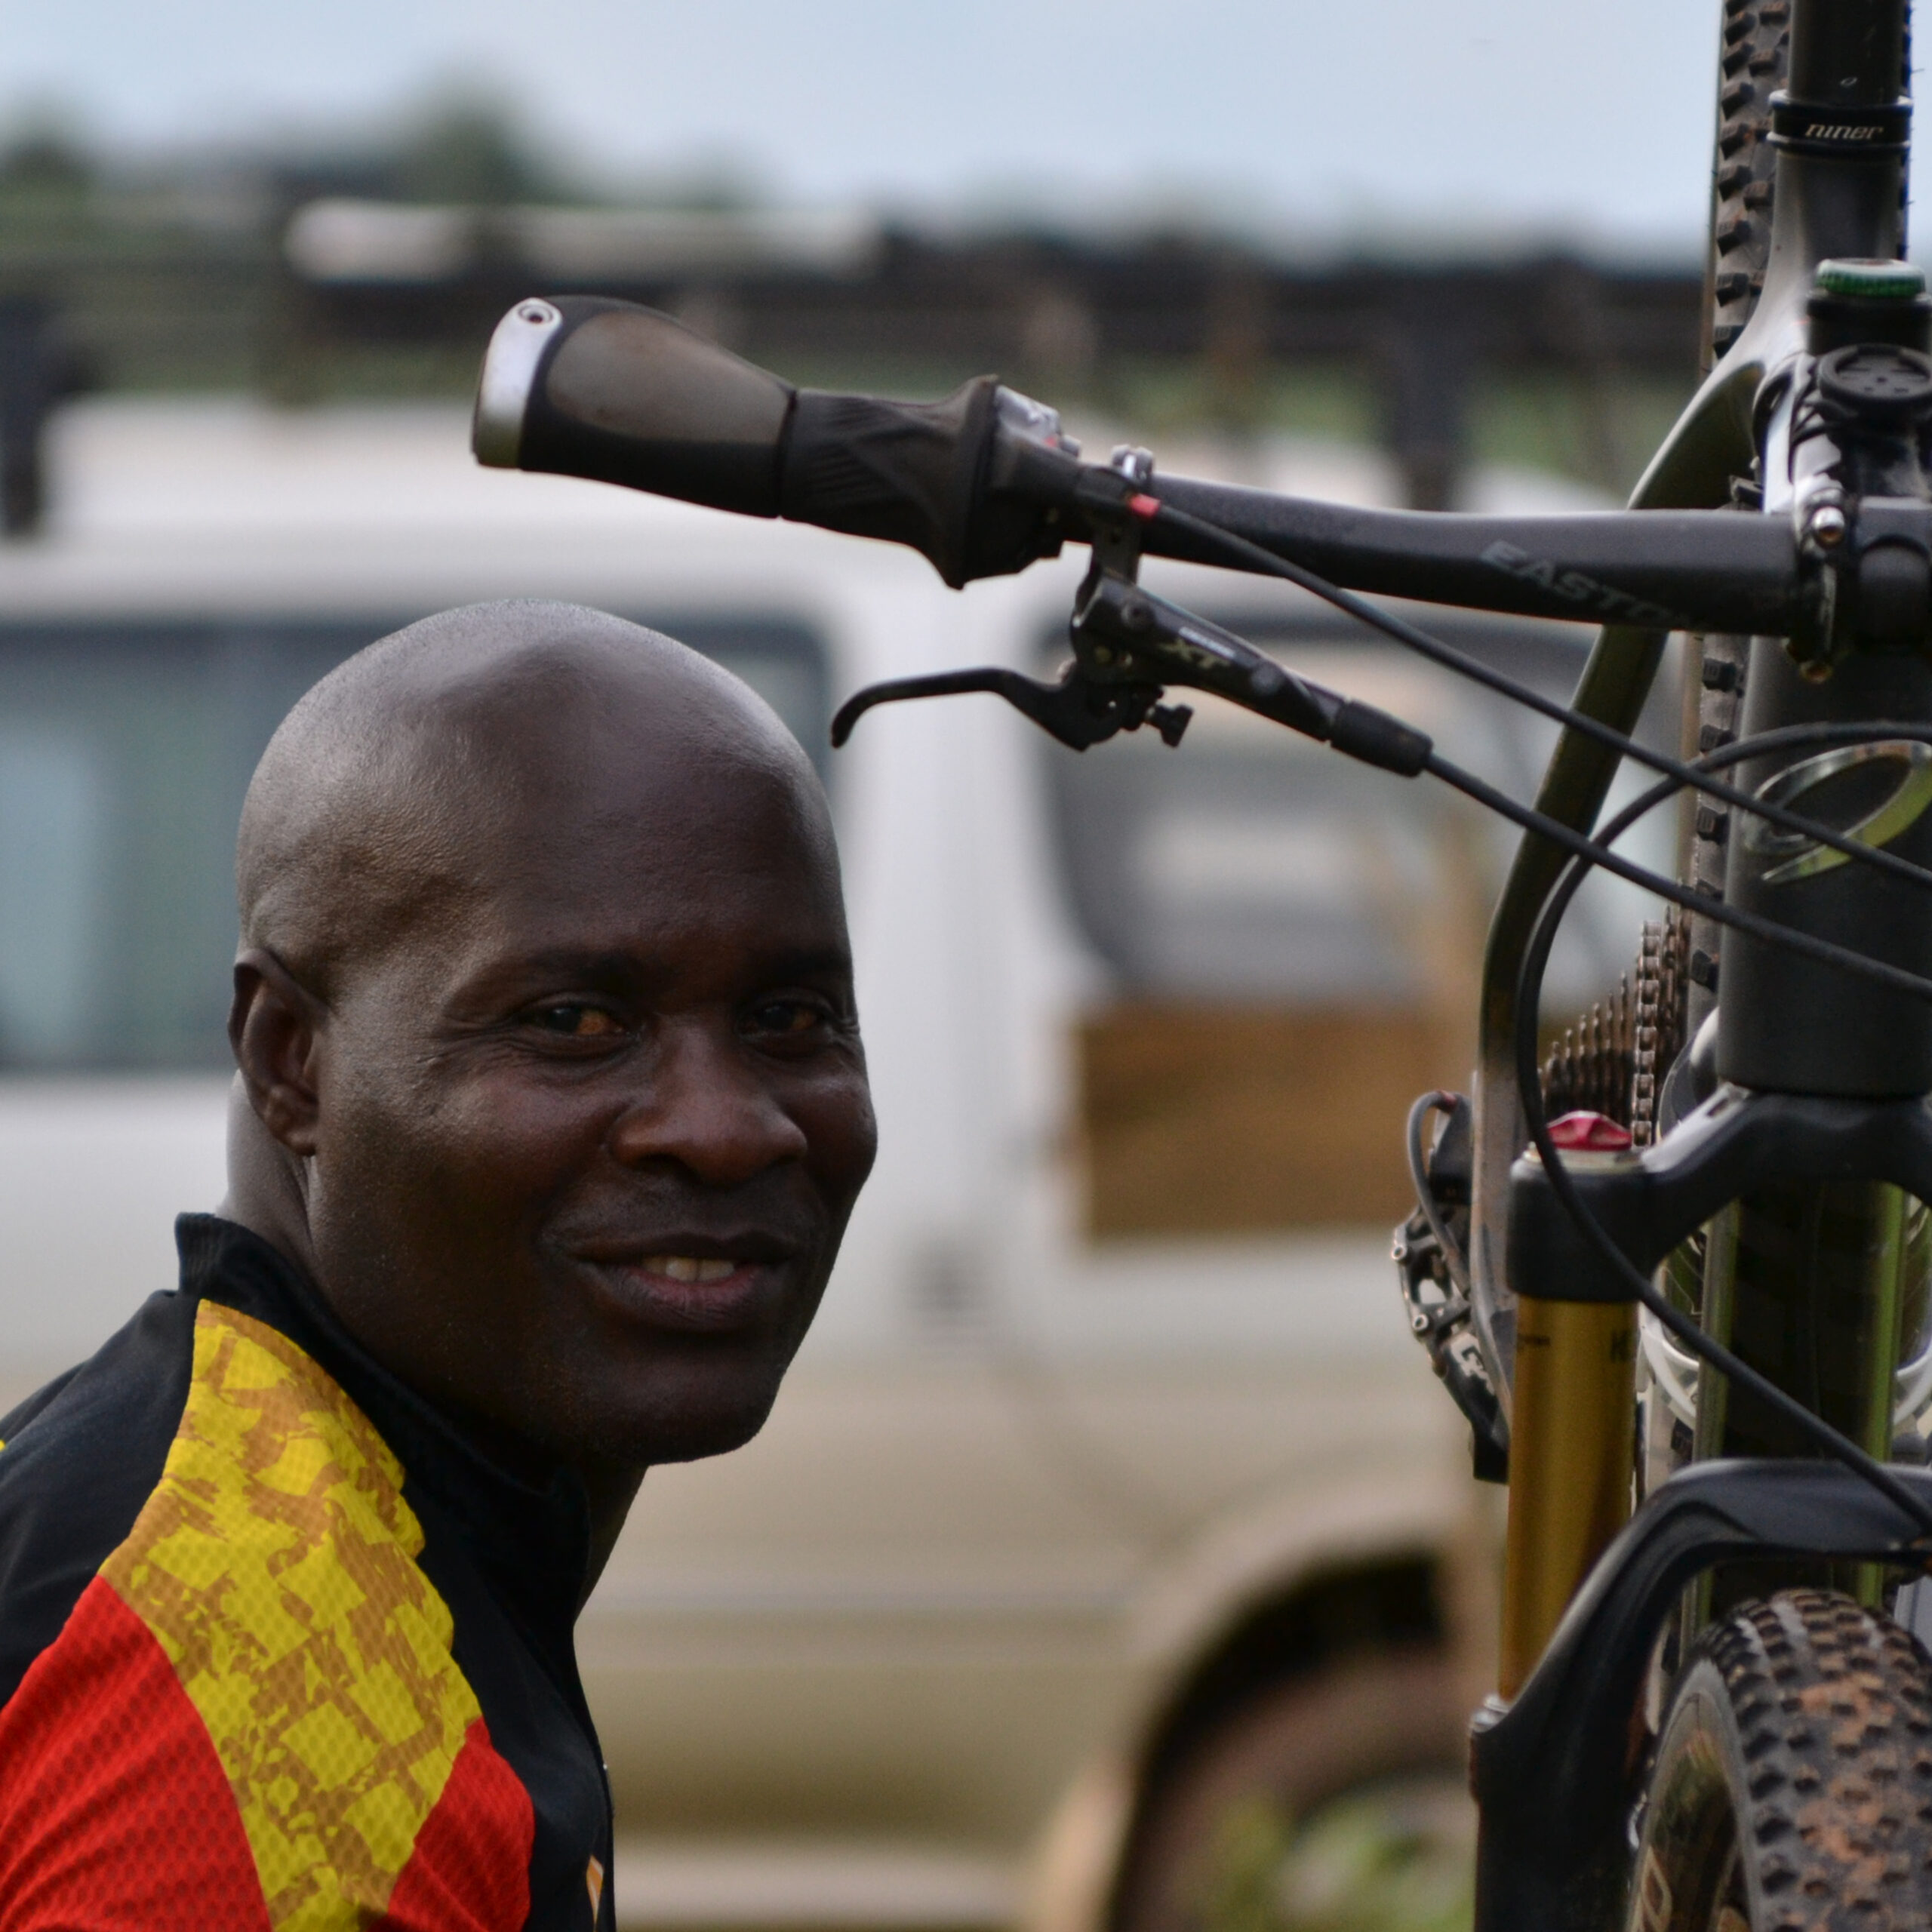 Red-Dirt-Uganda-Africa-Cycling-Adventure-Staff-Yusufu